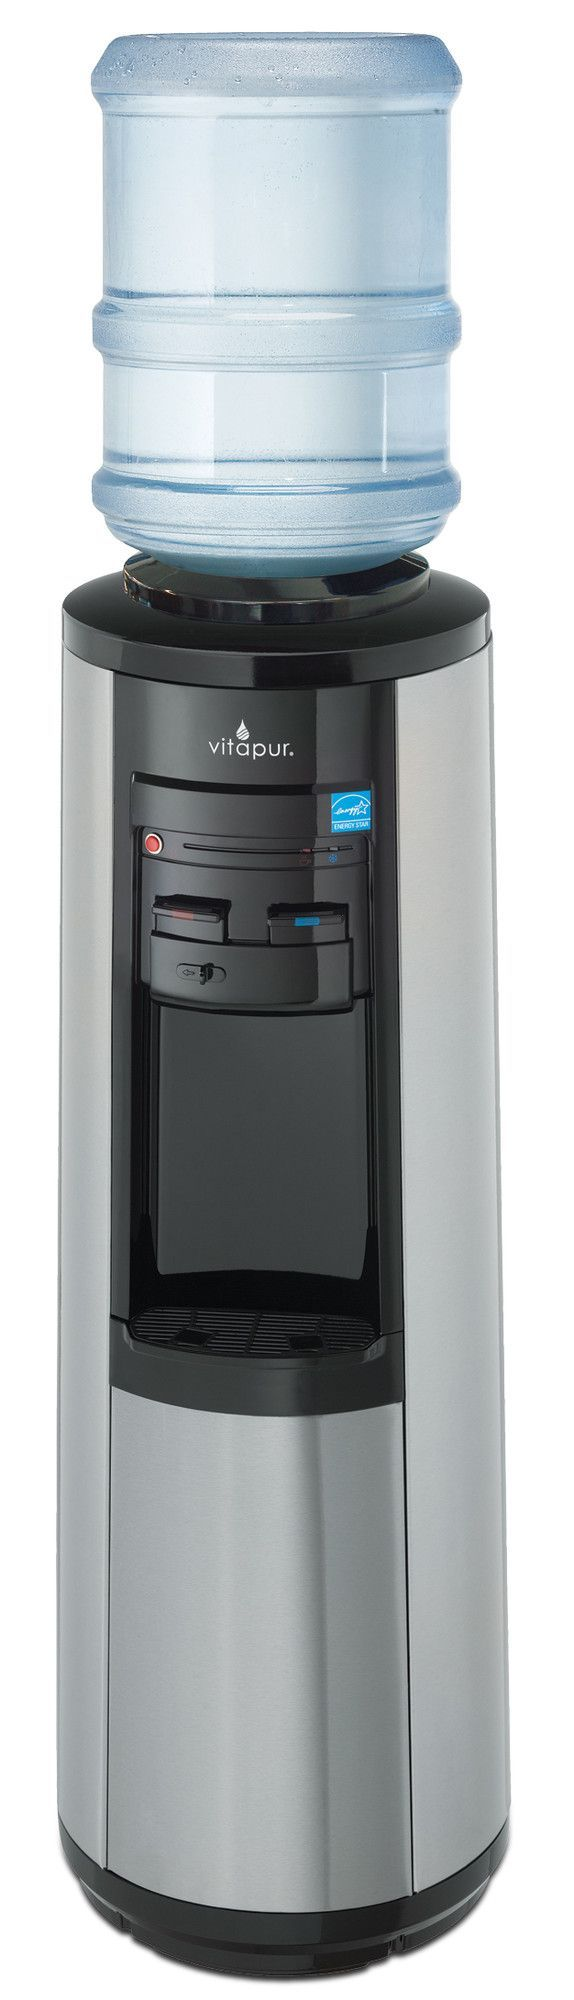 Vitapur Free-Standing Hot and Cold Water Cooler